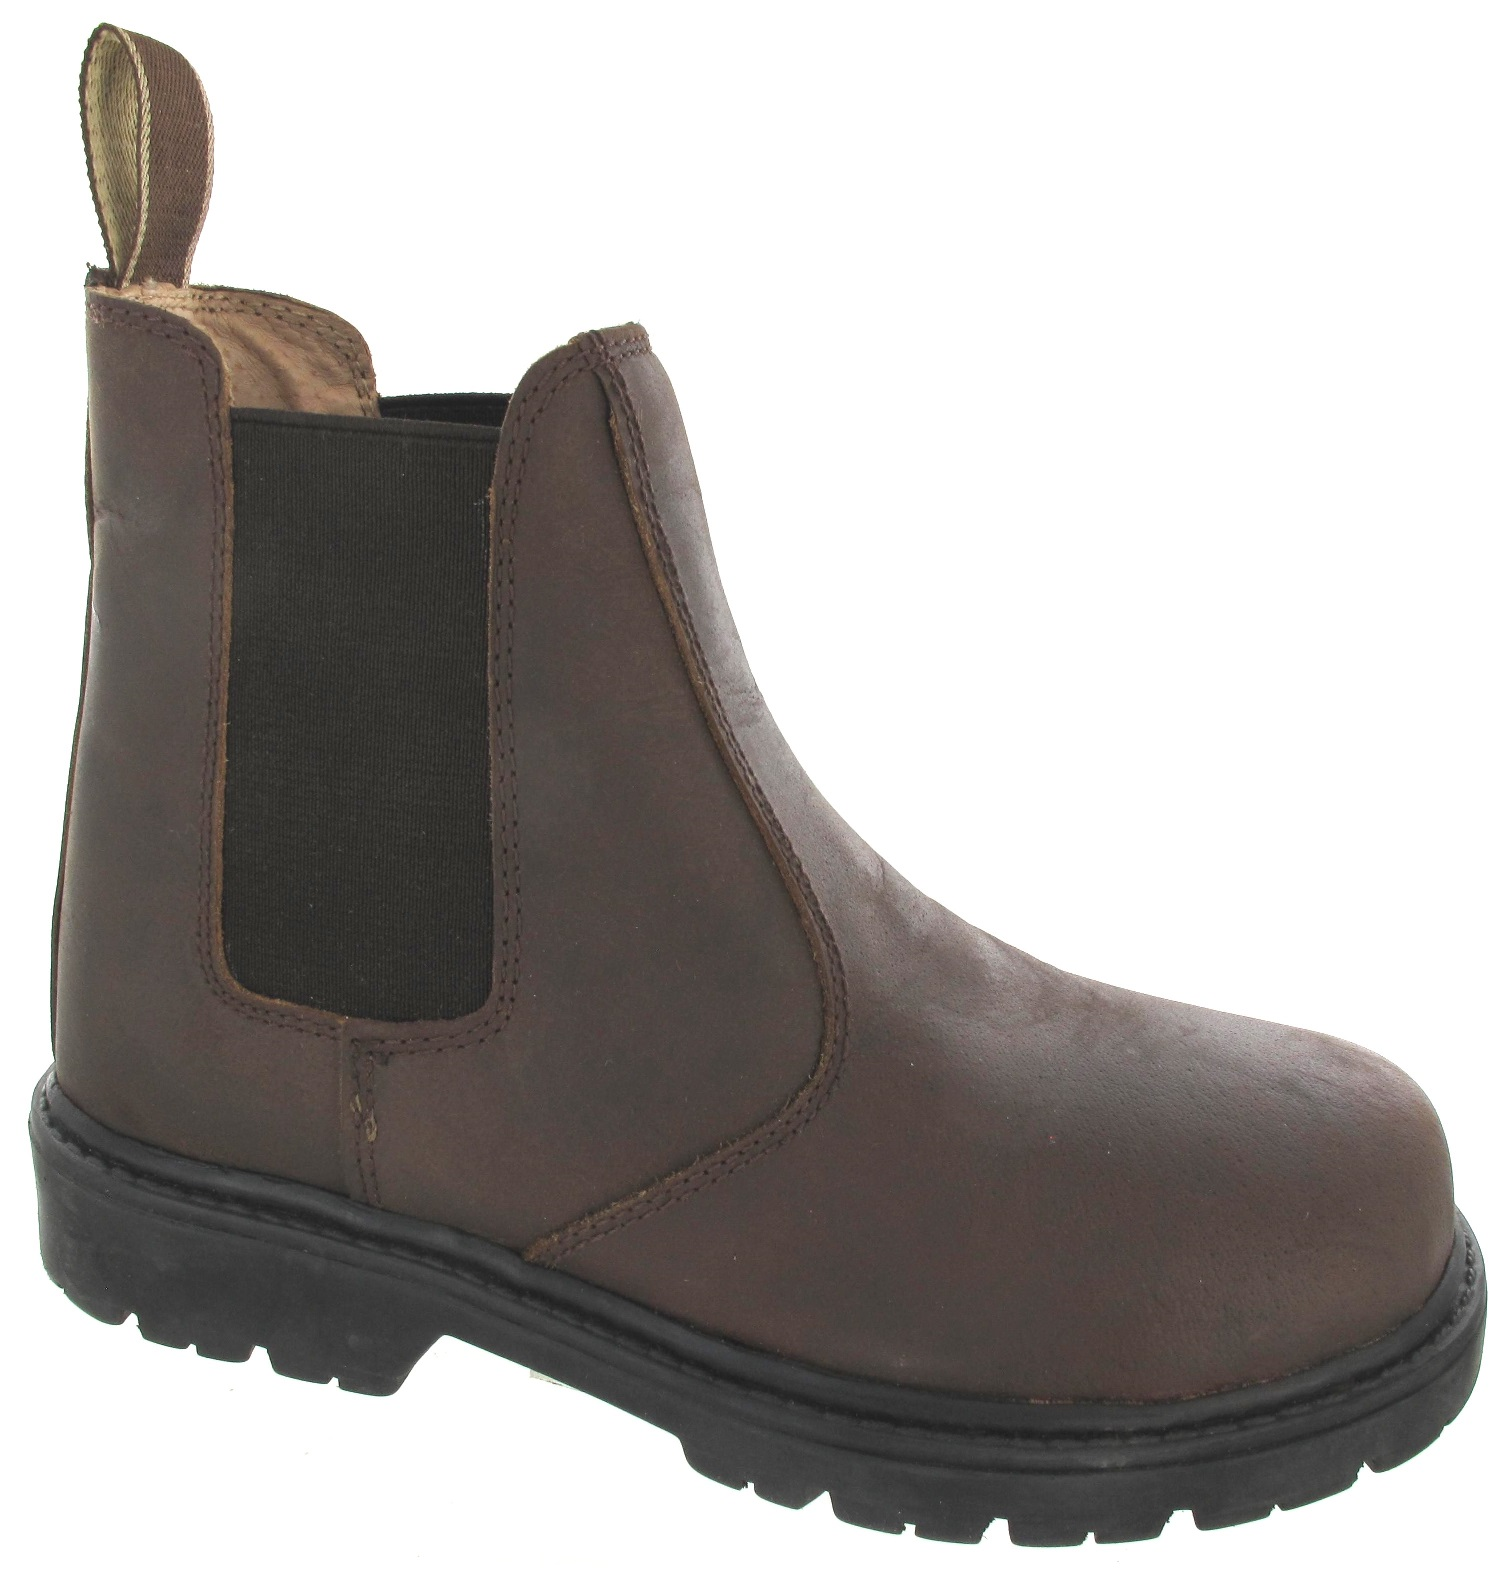 Men Ankle Boots Blundstone Leather Brown Innovations. At KONE, our track record in research and development means we hold more than 3, patents across our businesses. Read more about KONE's ground breaking innovations and solutions. KONE high-rise laboratories.